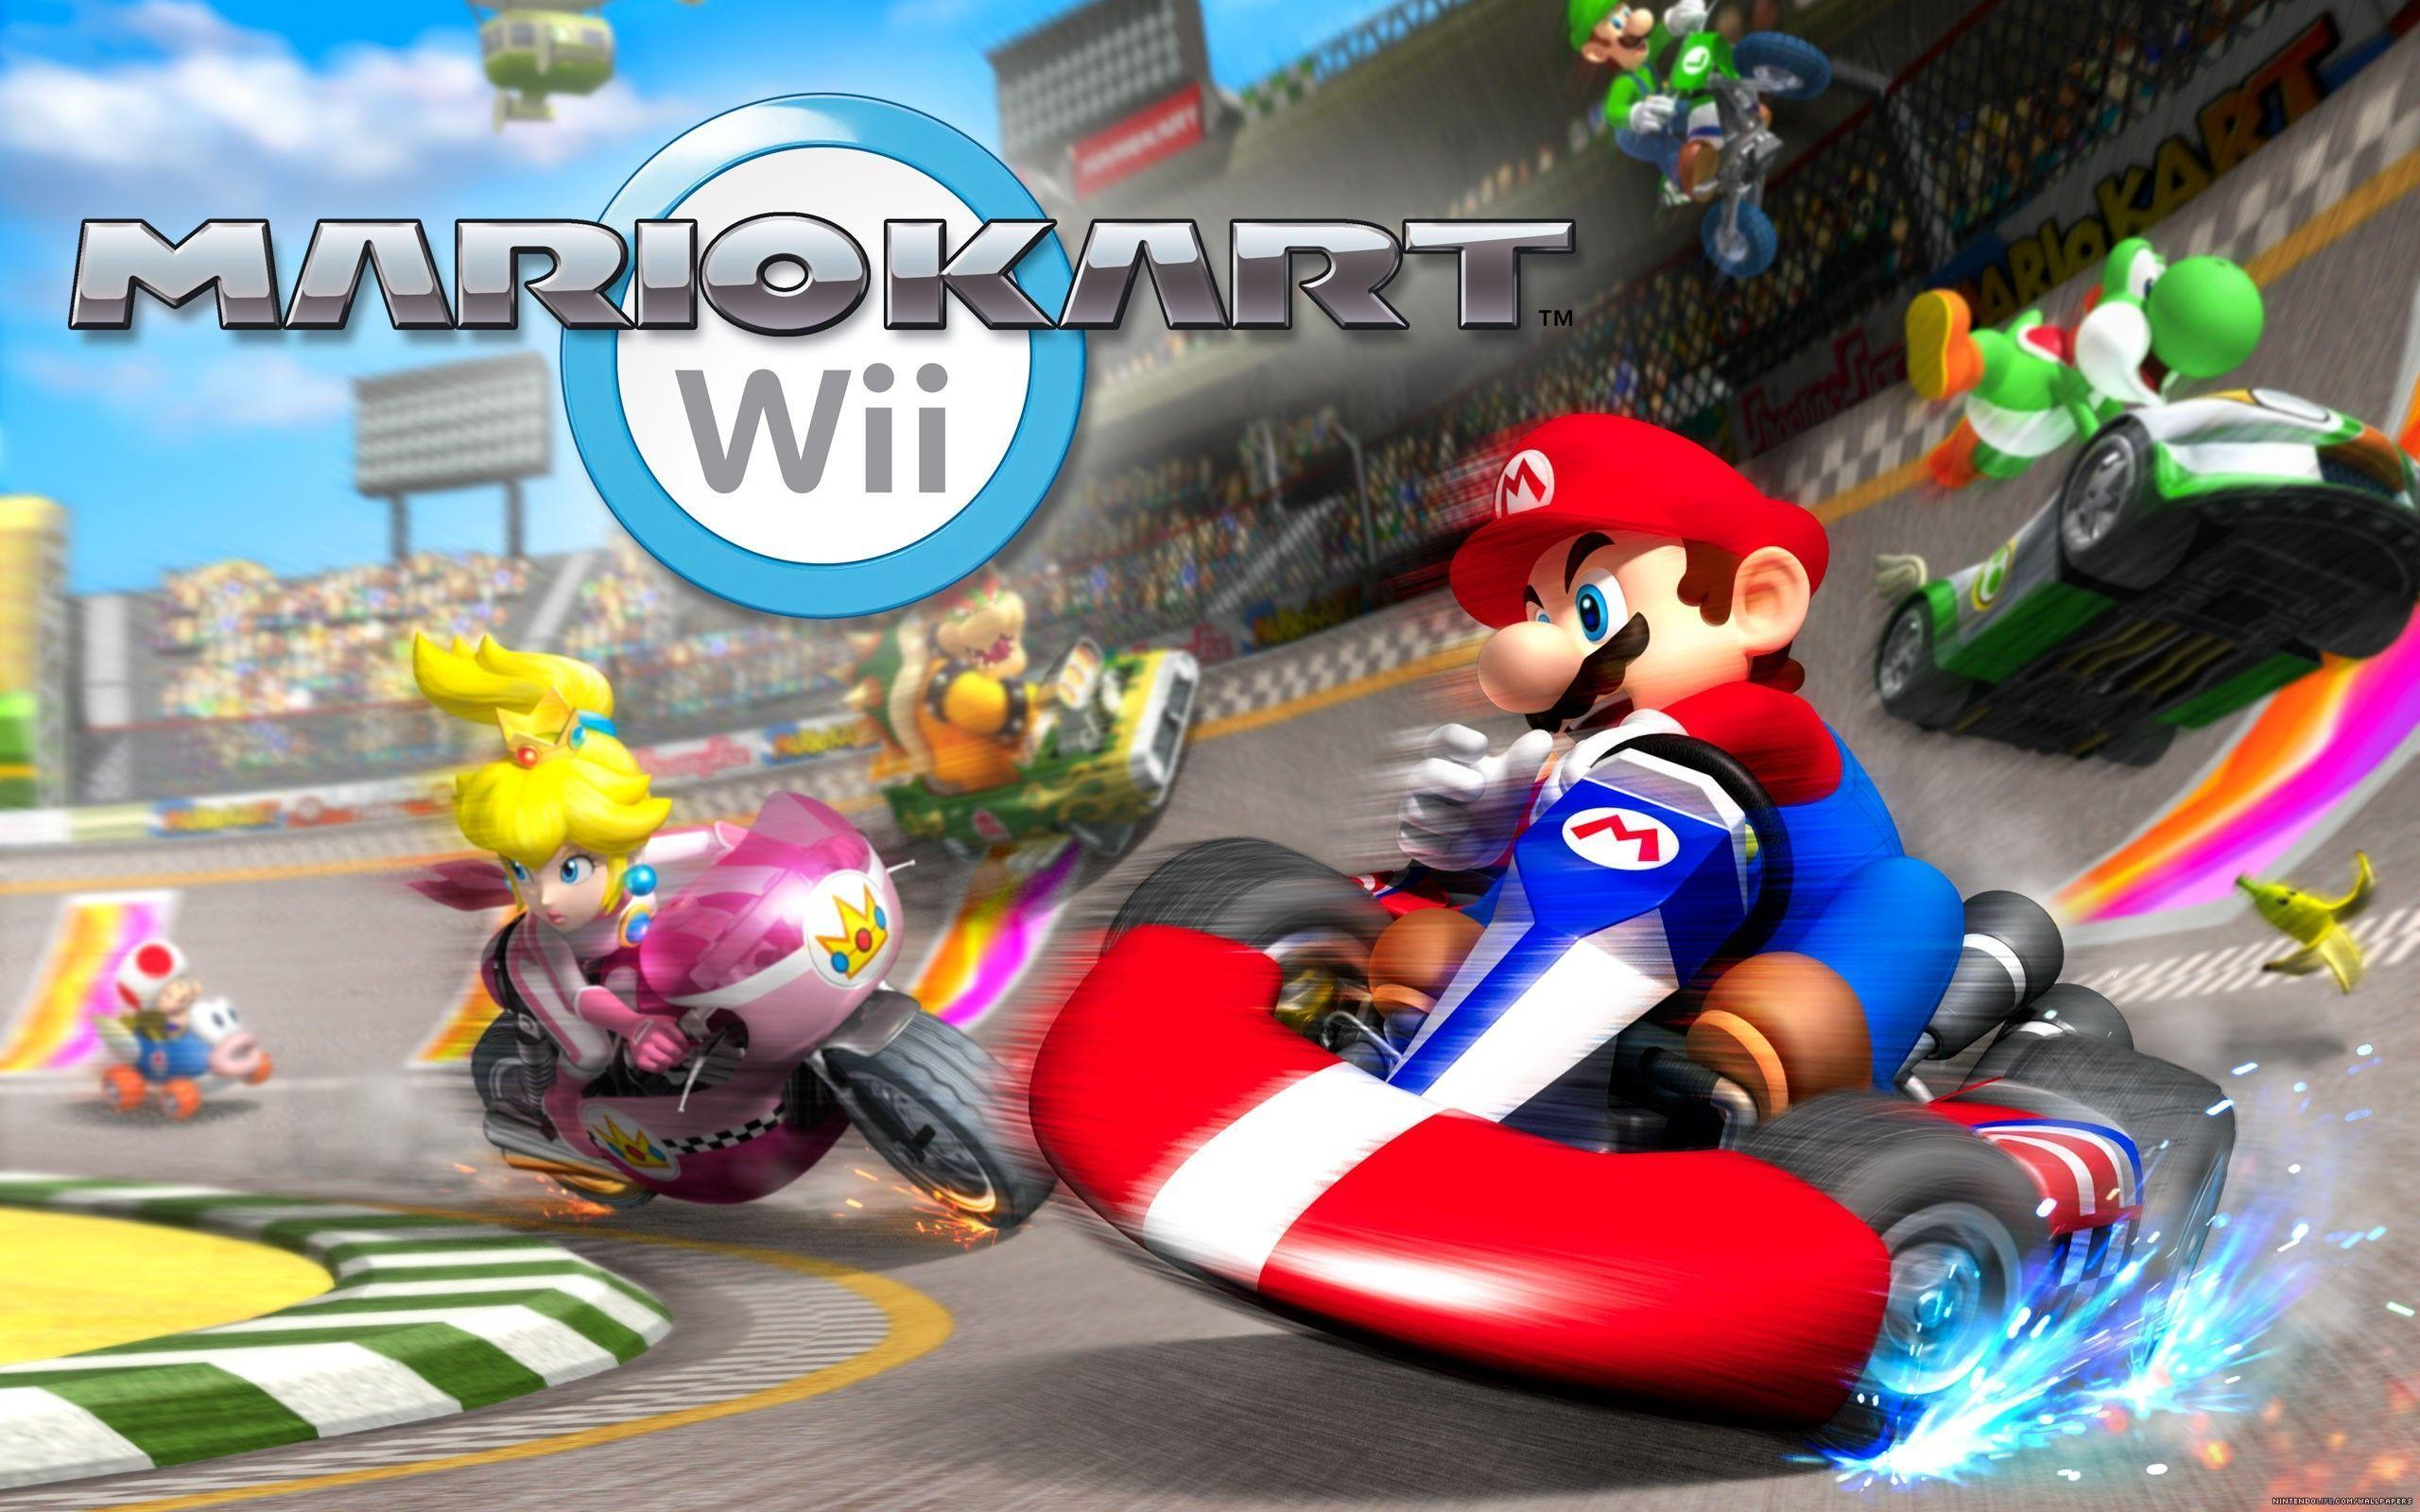 Mario Kart Wii Wallpapers - Wallpaper Cave